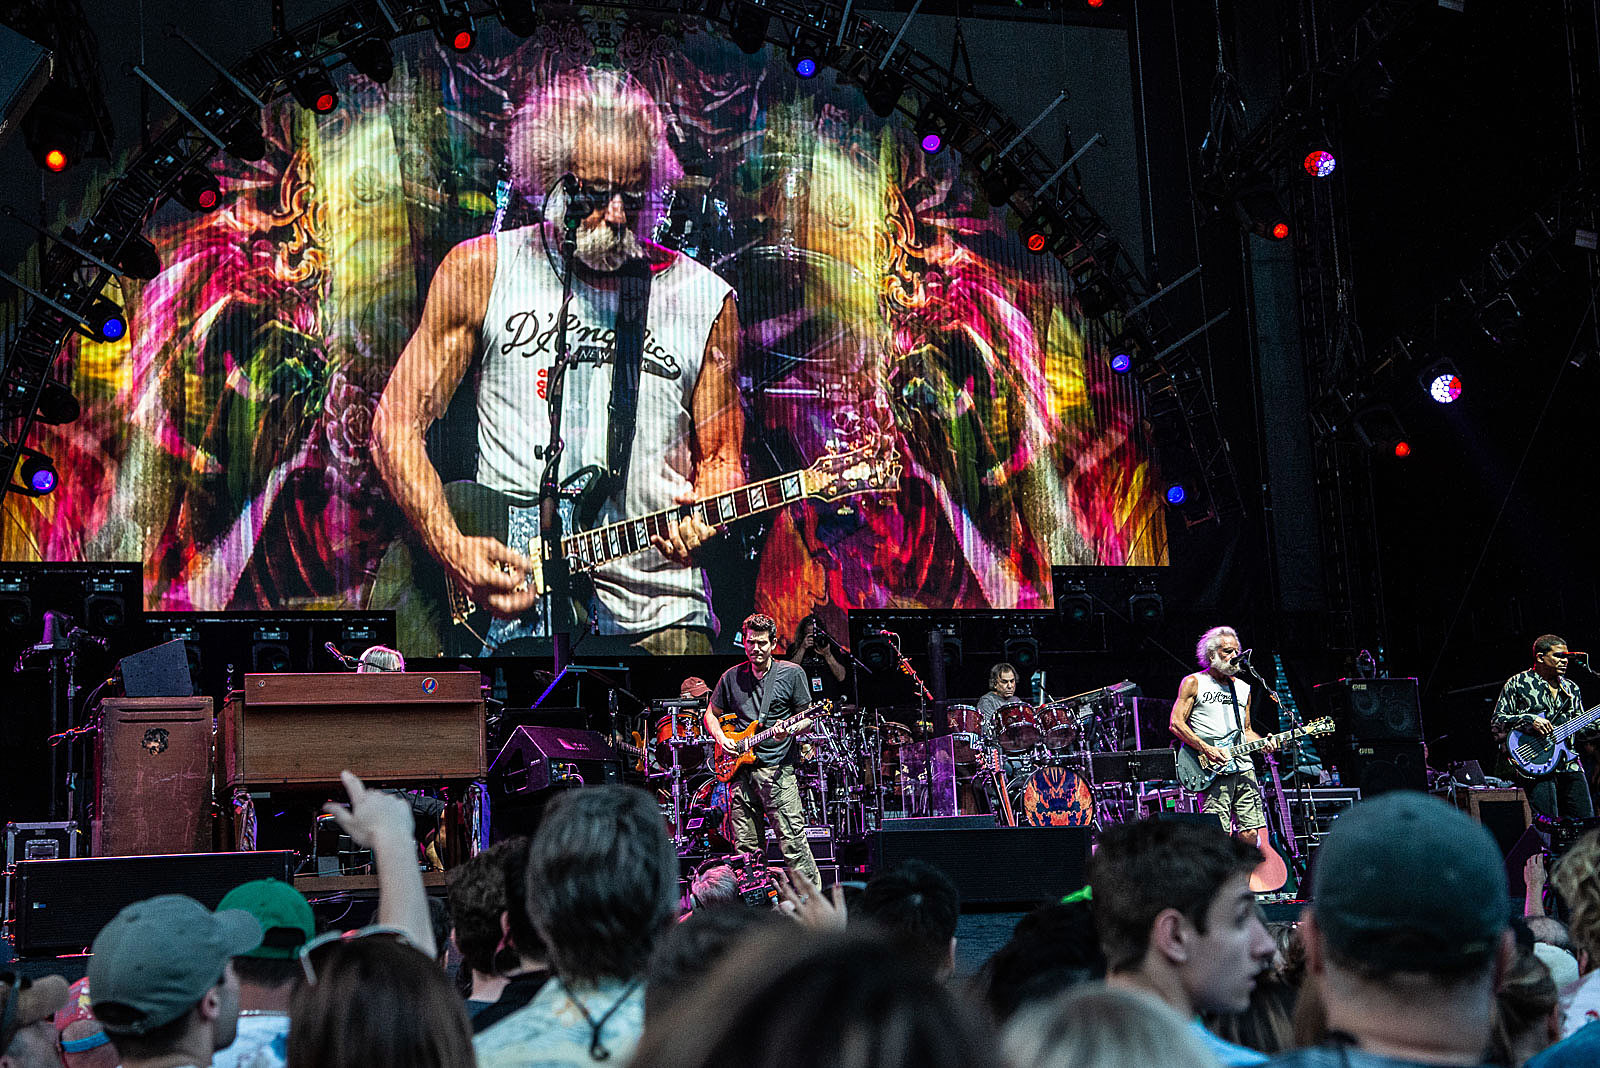 Dead And Co Tour Dates 2020 Dead & Co announce 2 night Halloween run at MSG and other fall dates